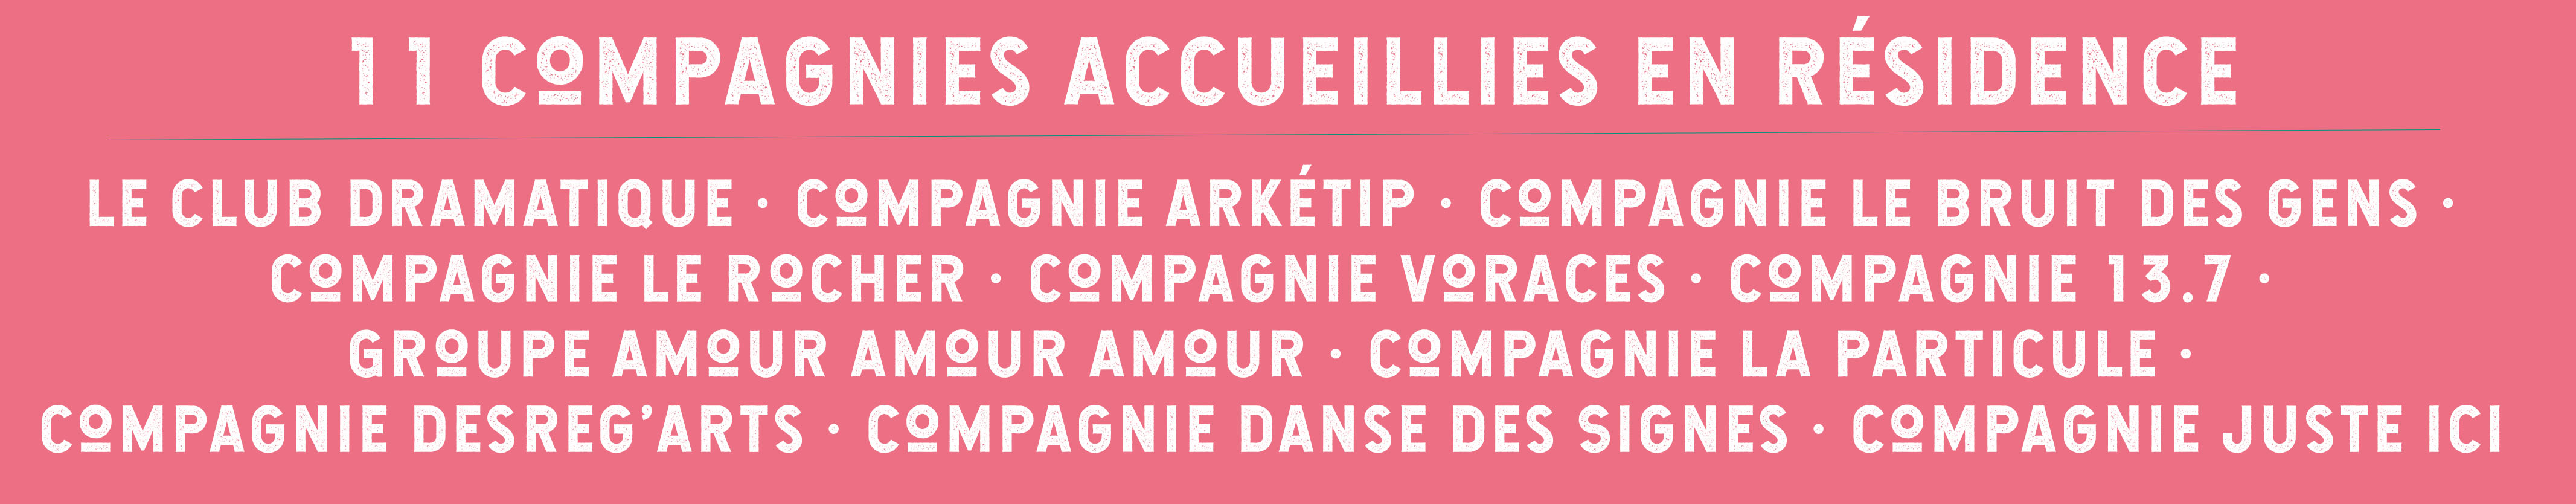 11 compagnies Accueillies